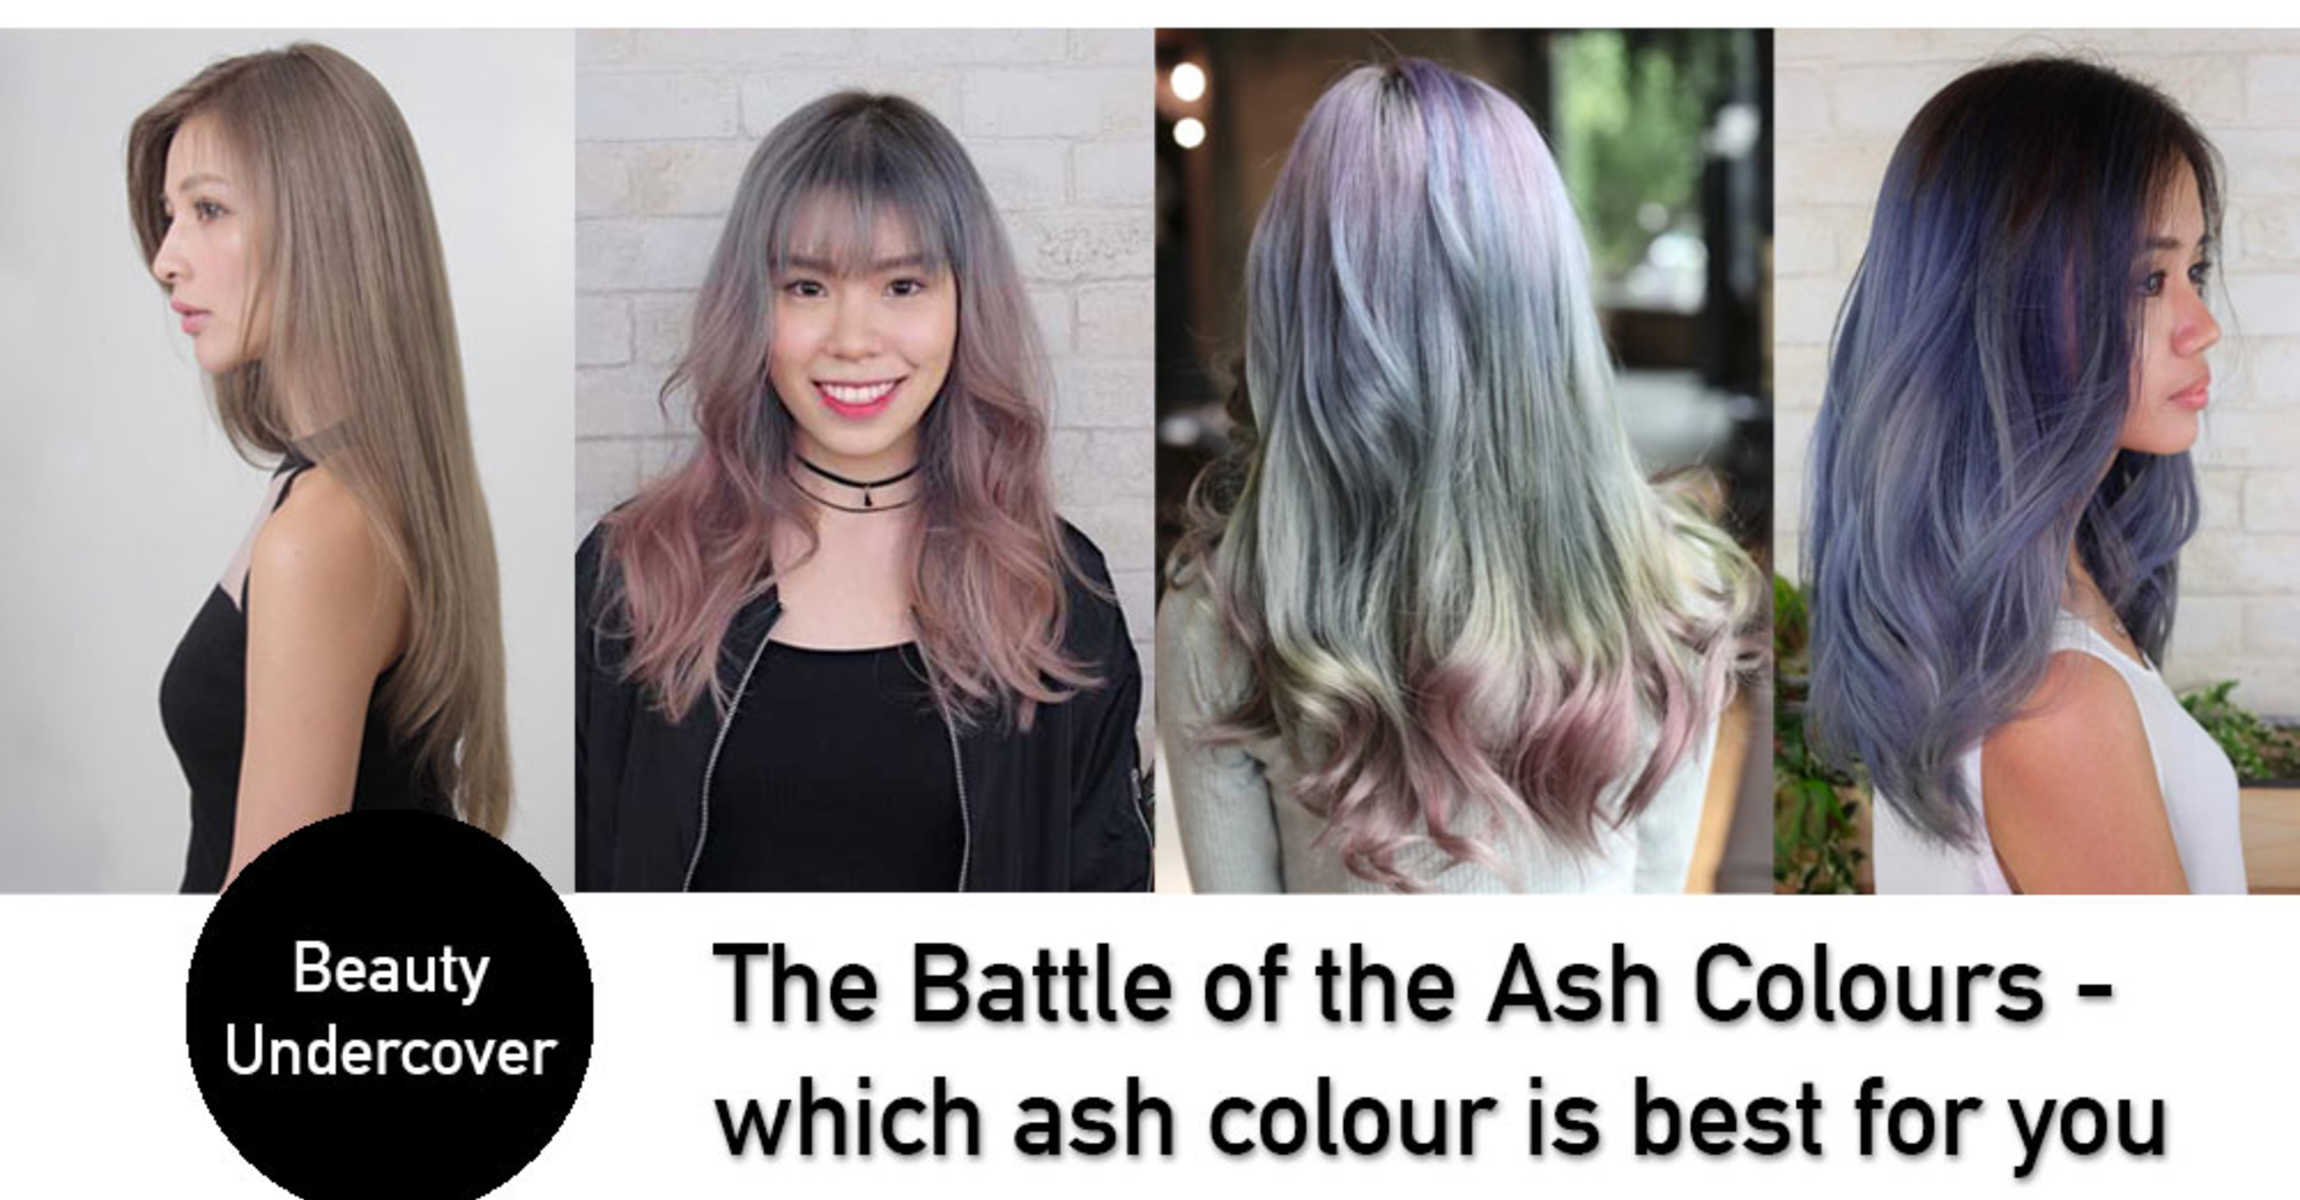 Ash Green Vs Ash Grey Vs Ash Blue Vs Ash Purple Vs Ash Brown Which Ash